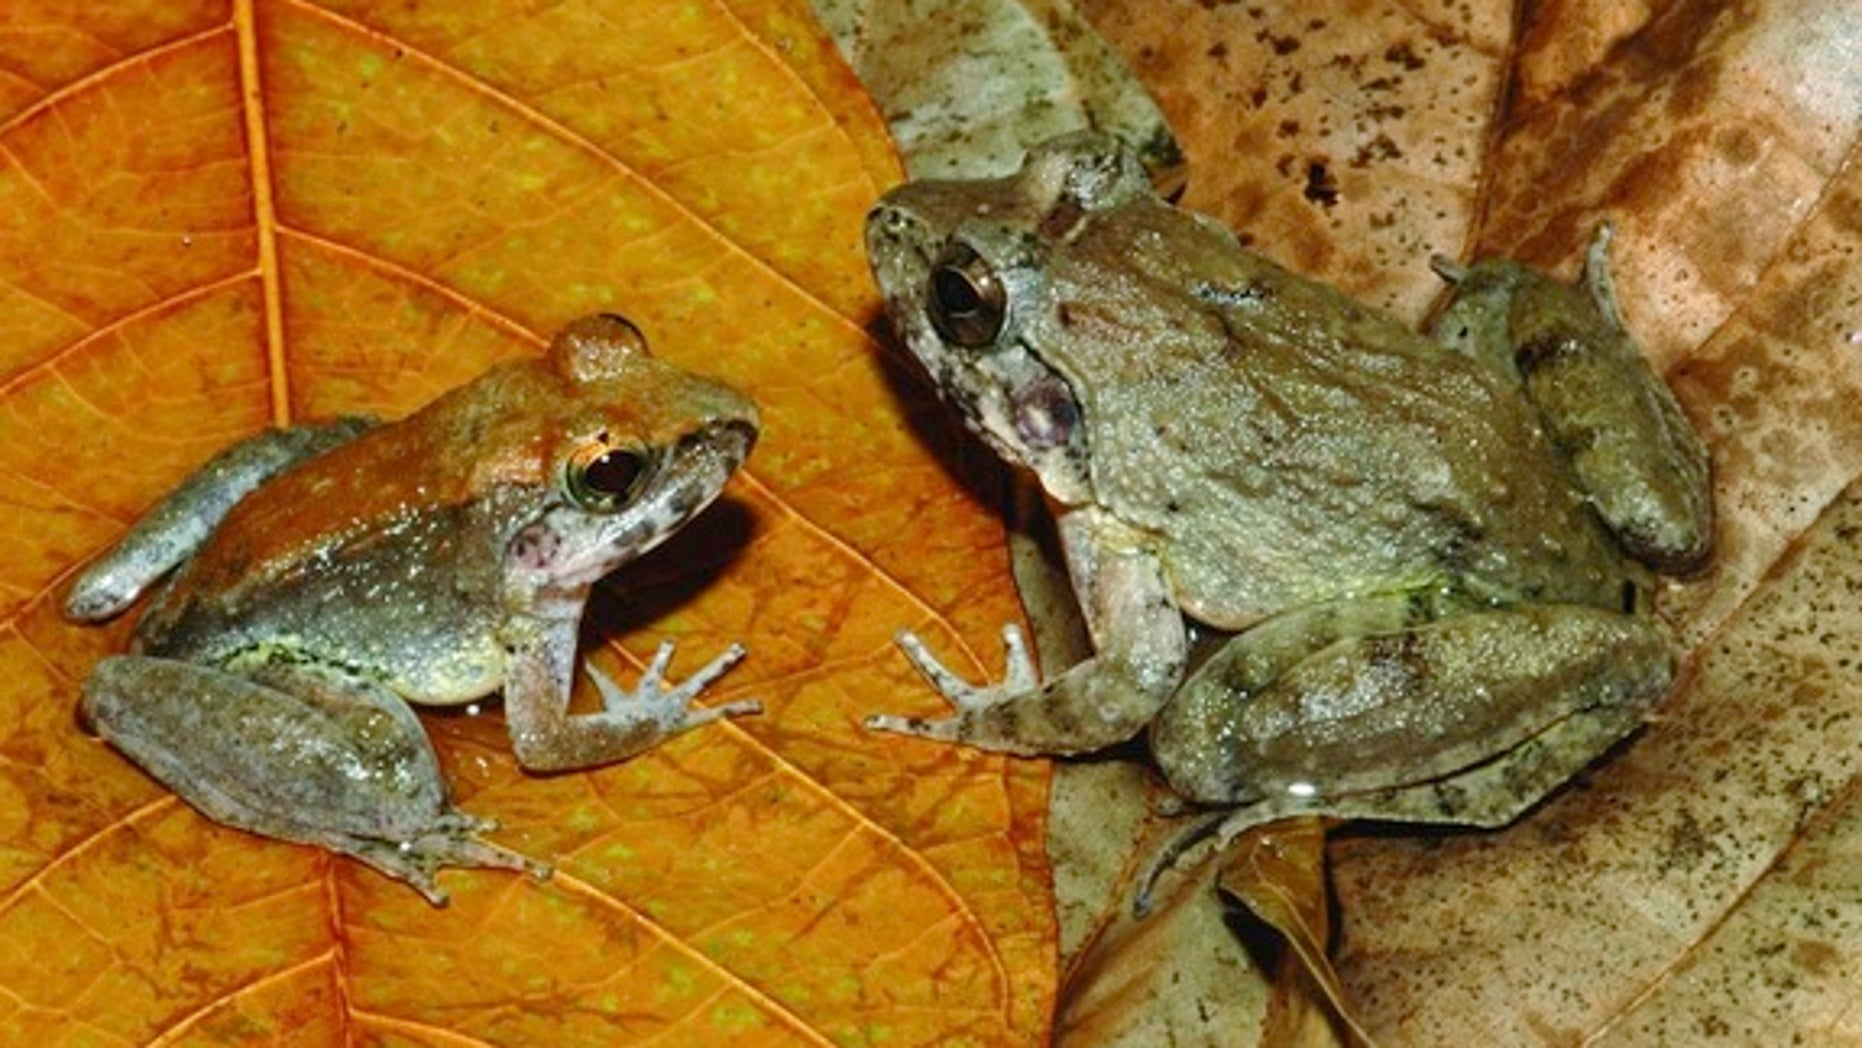 Freaky find: Herpetologist Jim McGuire was in for a surprise when he picked up one of these Indonesian fanged frogs and found it had just given birth to a handful of live tadpoles.